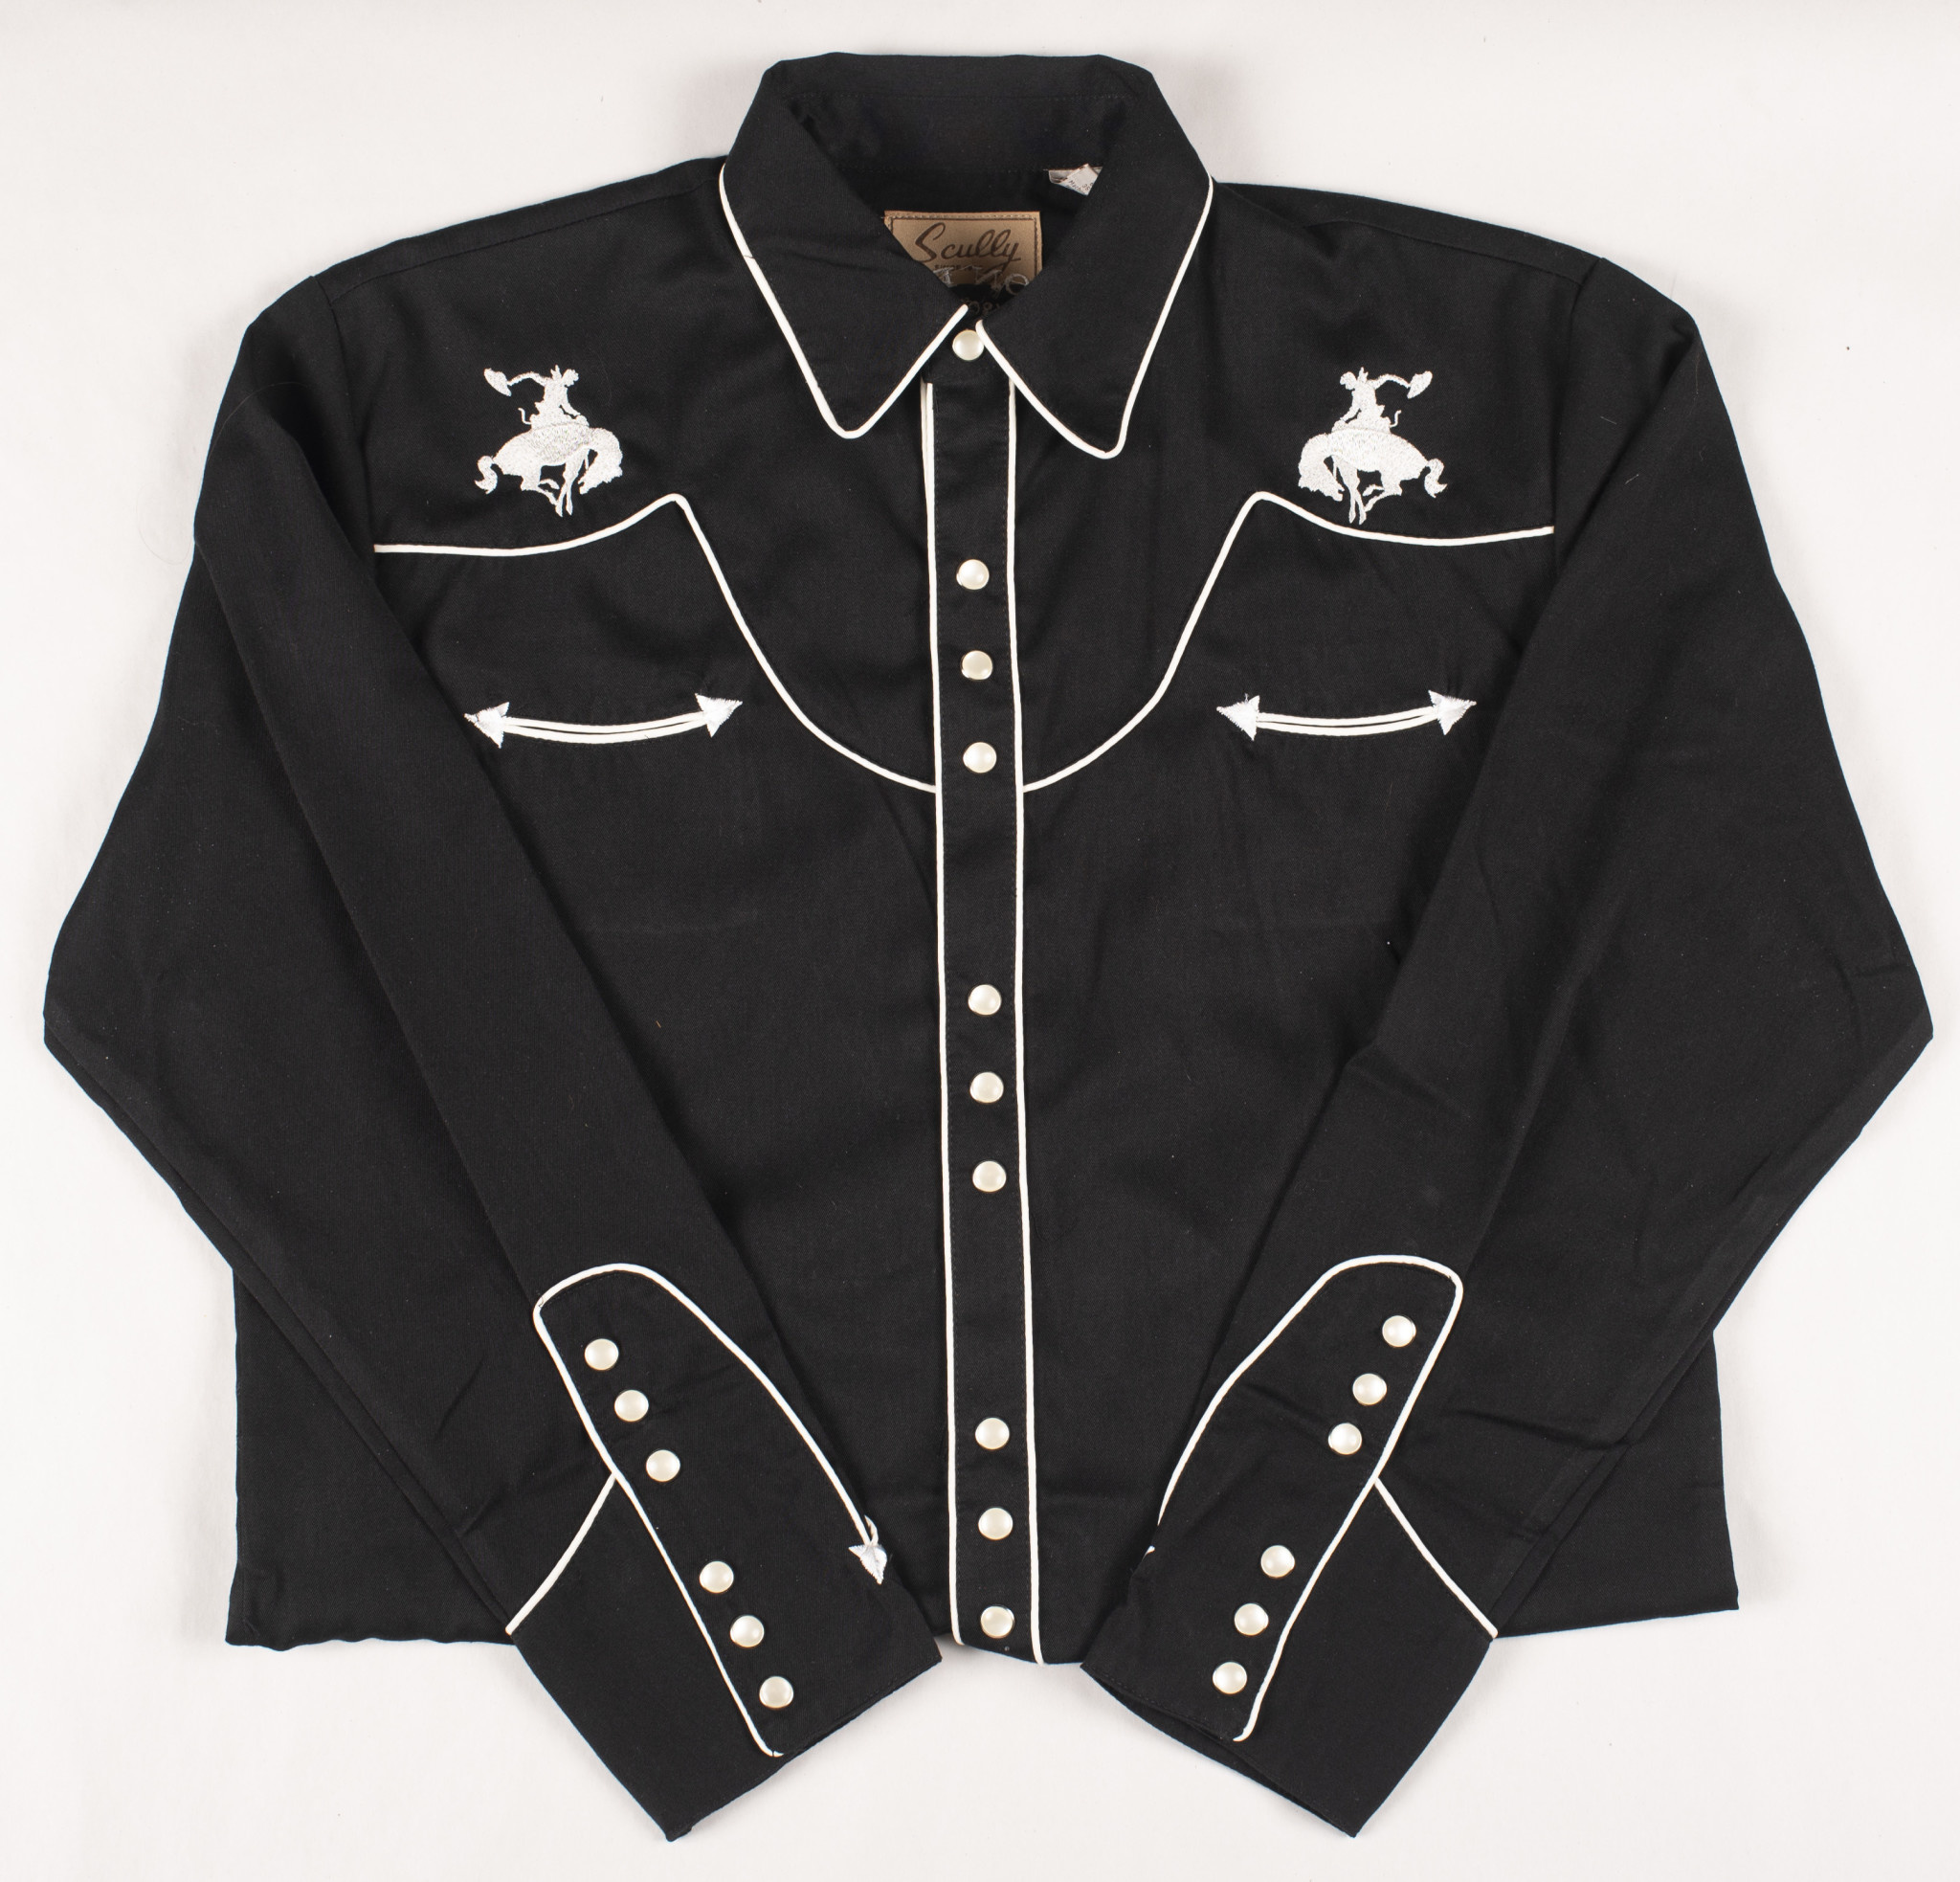 Skully Dress  Shirt with White Piping and Embroidery